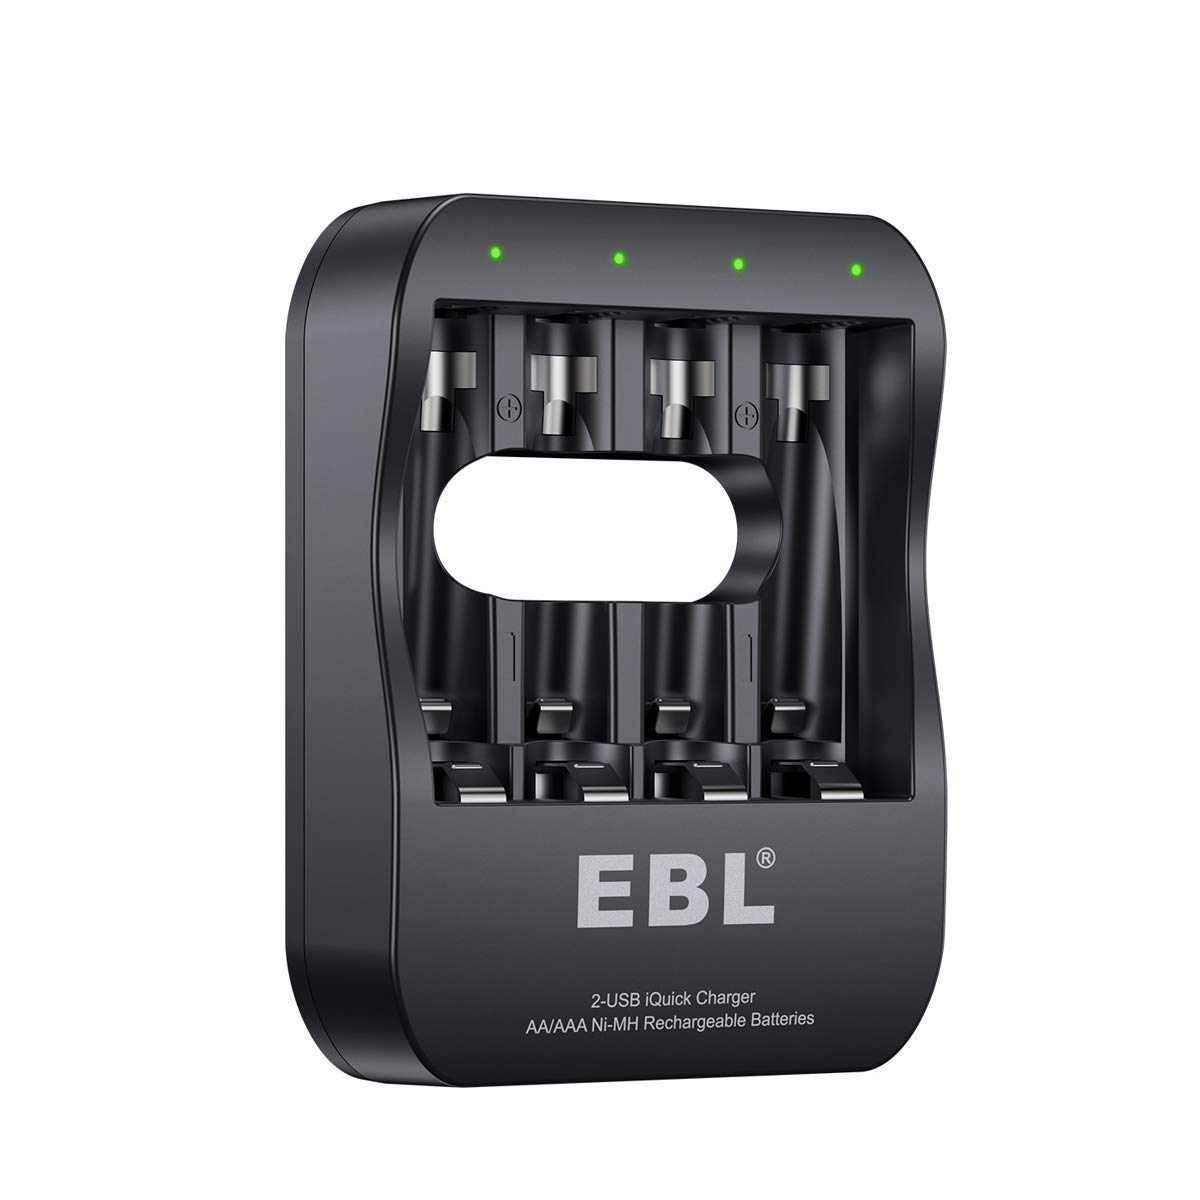 EBL iQuick USB 4 Slots Battery Charger For AA AAA Ni-MH Rechargeable Batteries